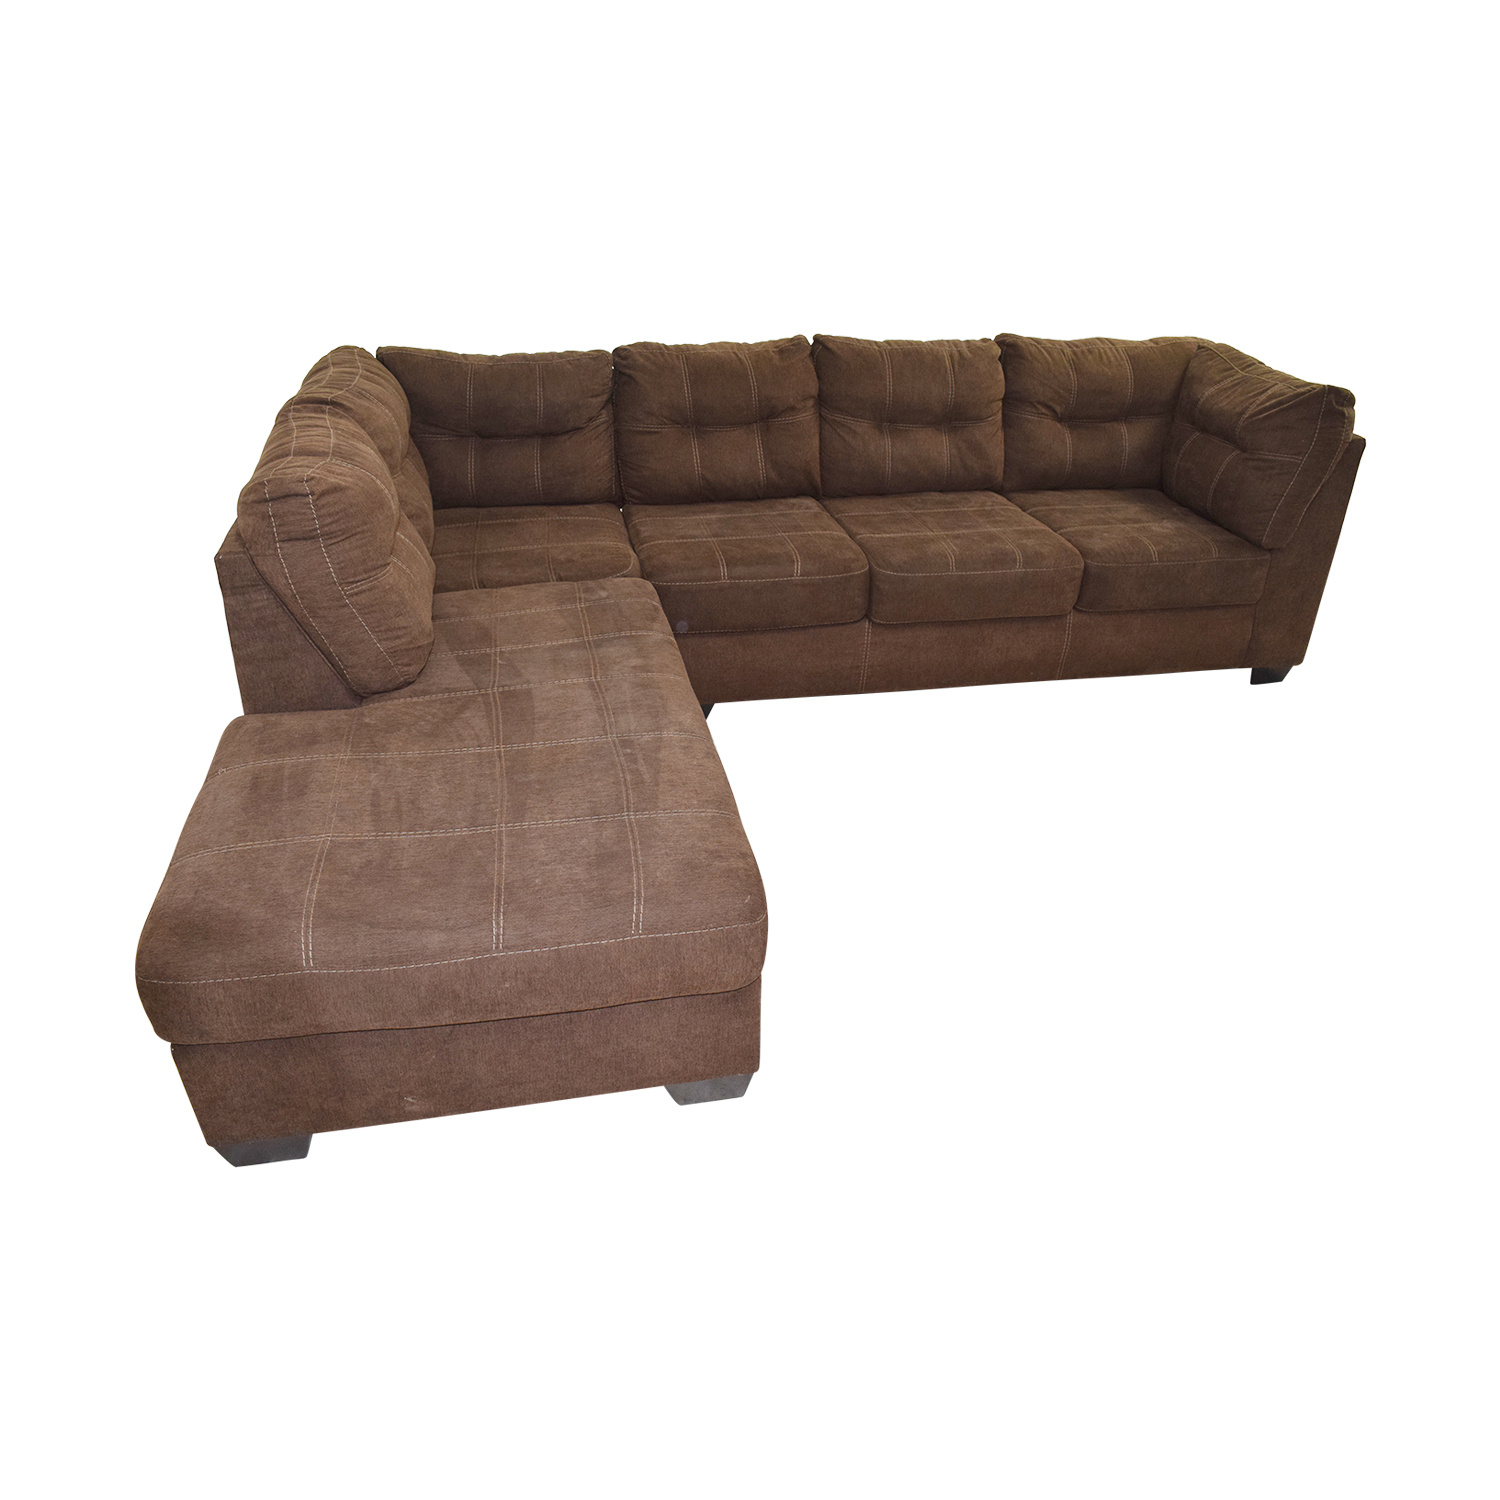 64 off brown l shaped chaise sectional sofa sofas Loveseat chaise sectional